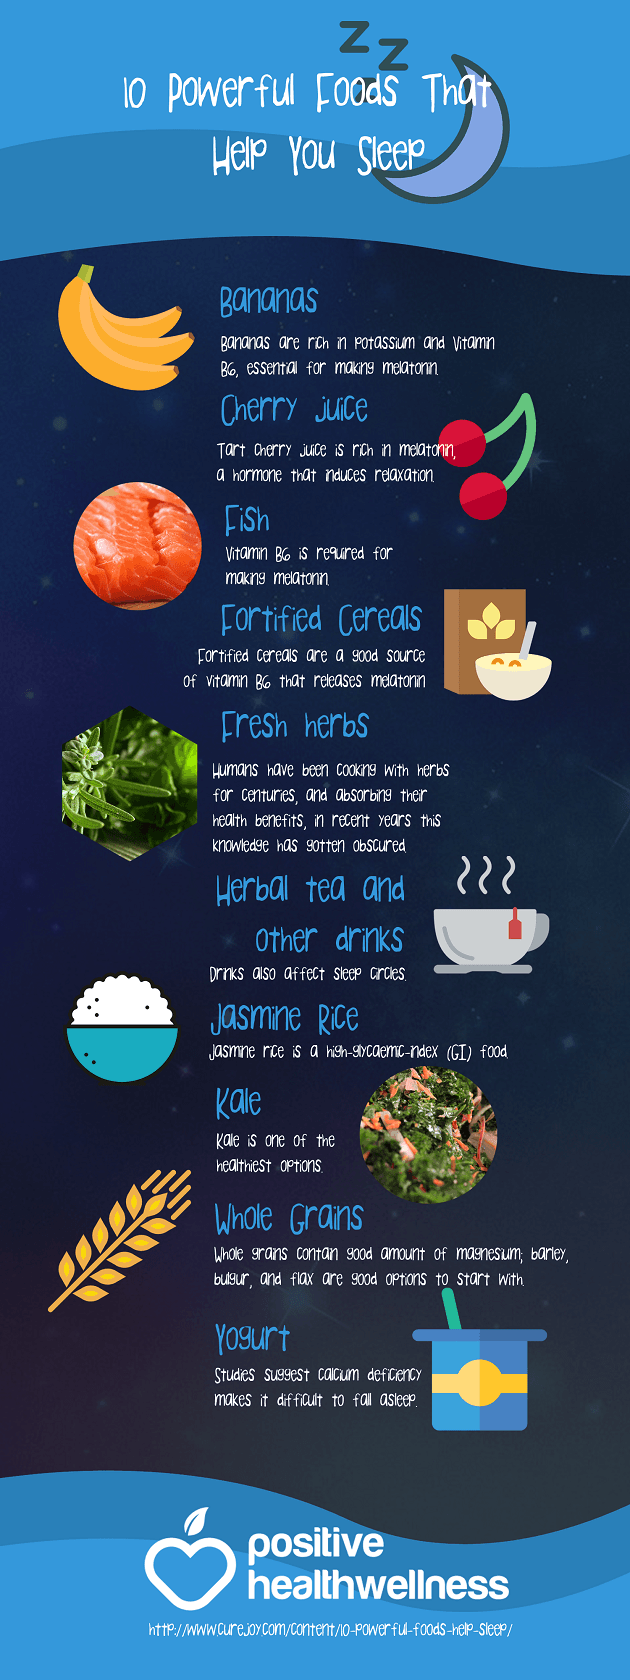 10 Powerful Foods That Help You Sleep